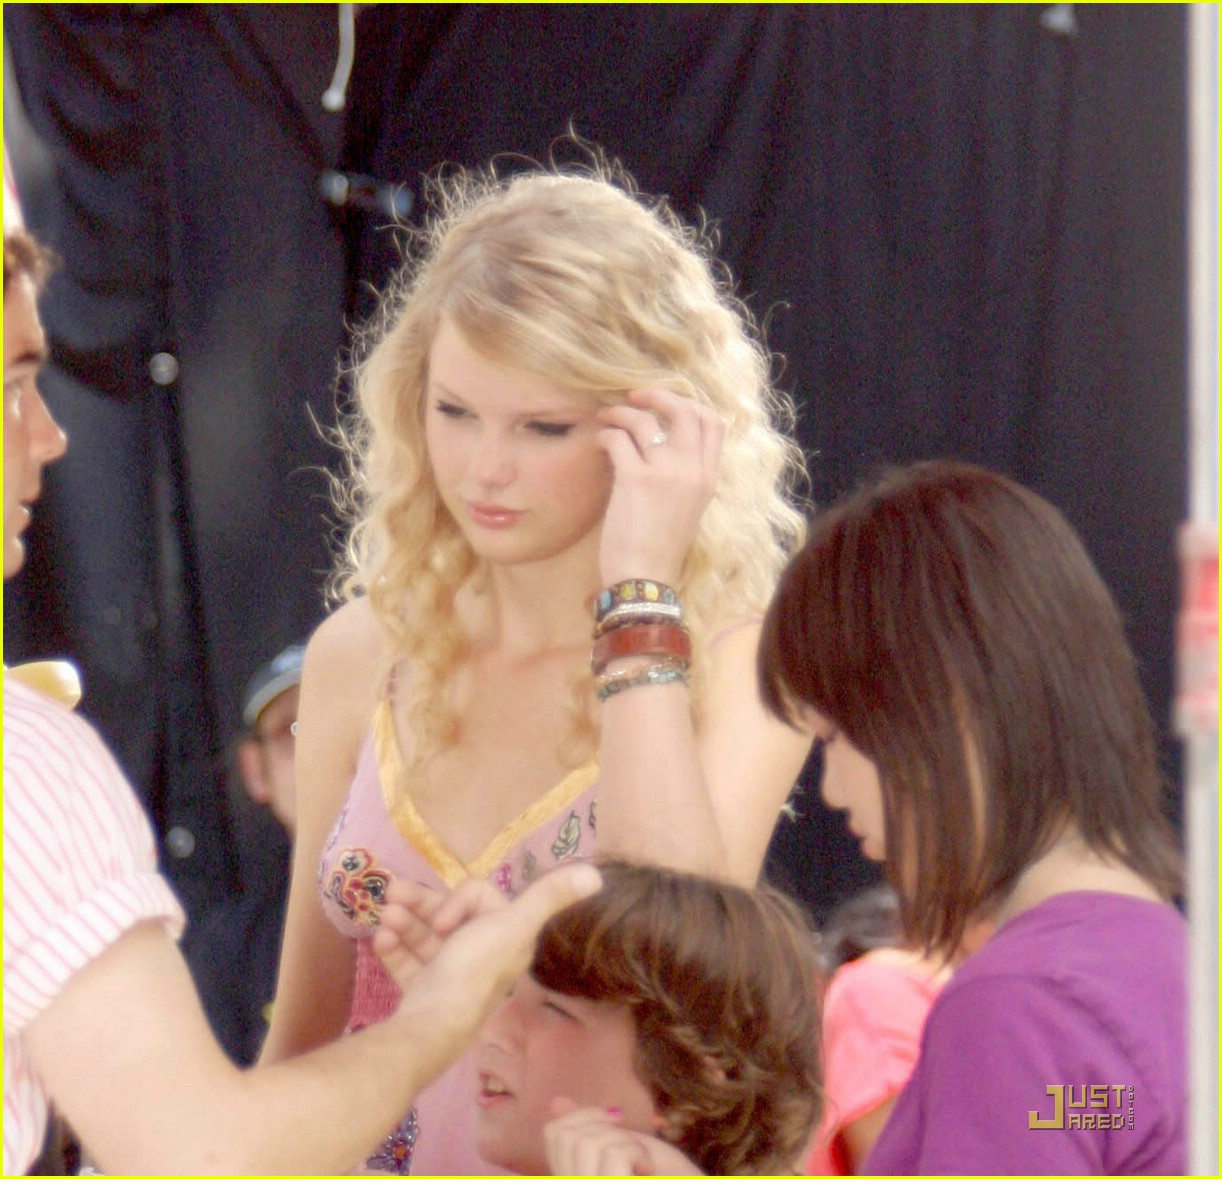 kevin jonas & taylor swift are a cute columbus couple: photo 1342851